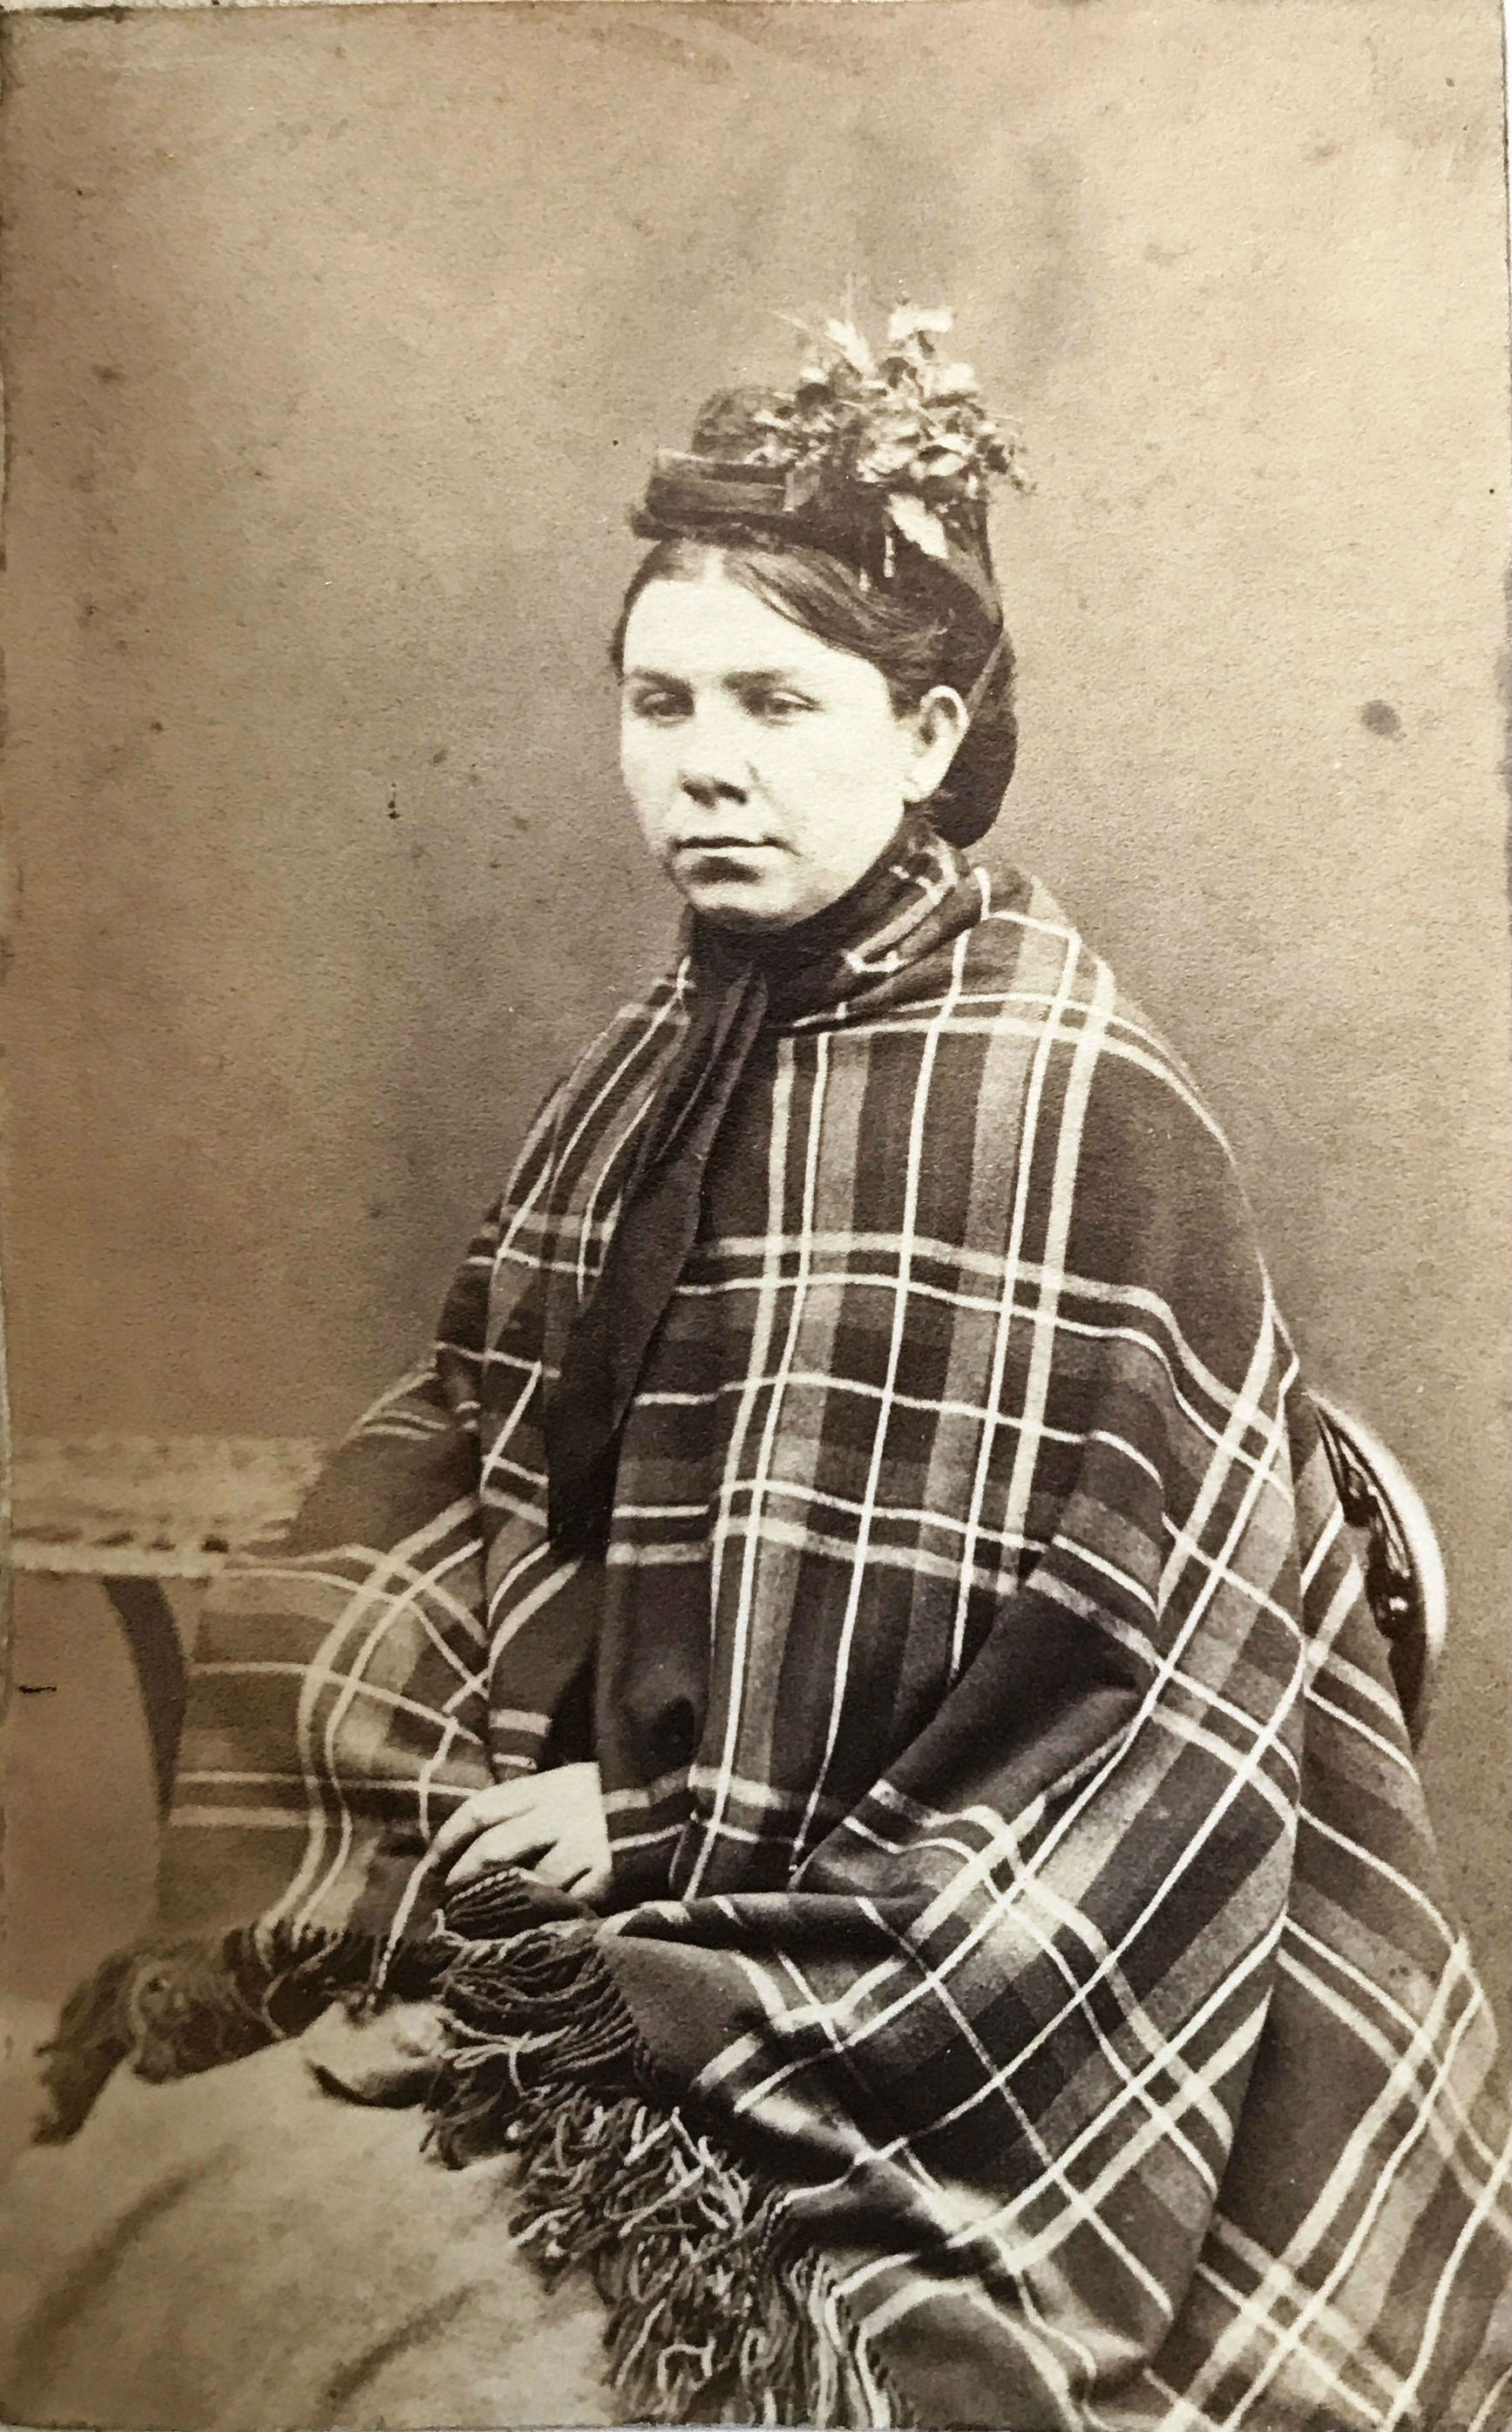 New exhibition shows faces of Scotland's Victorian crooks